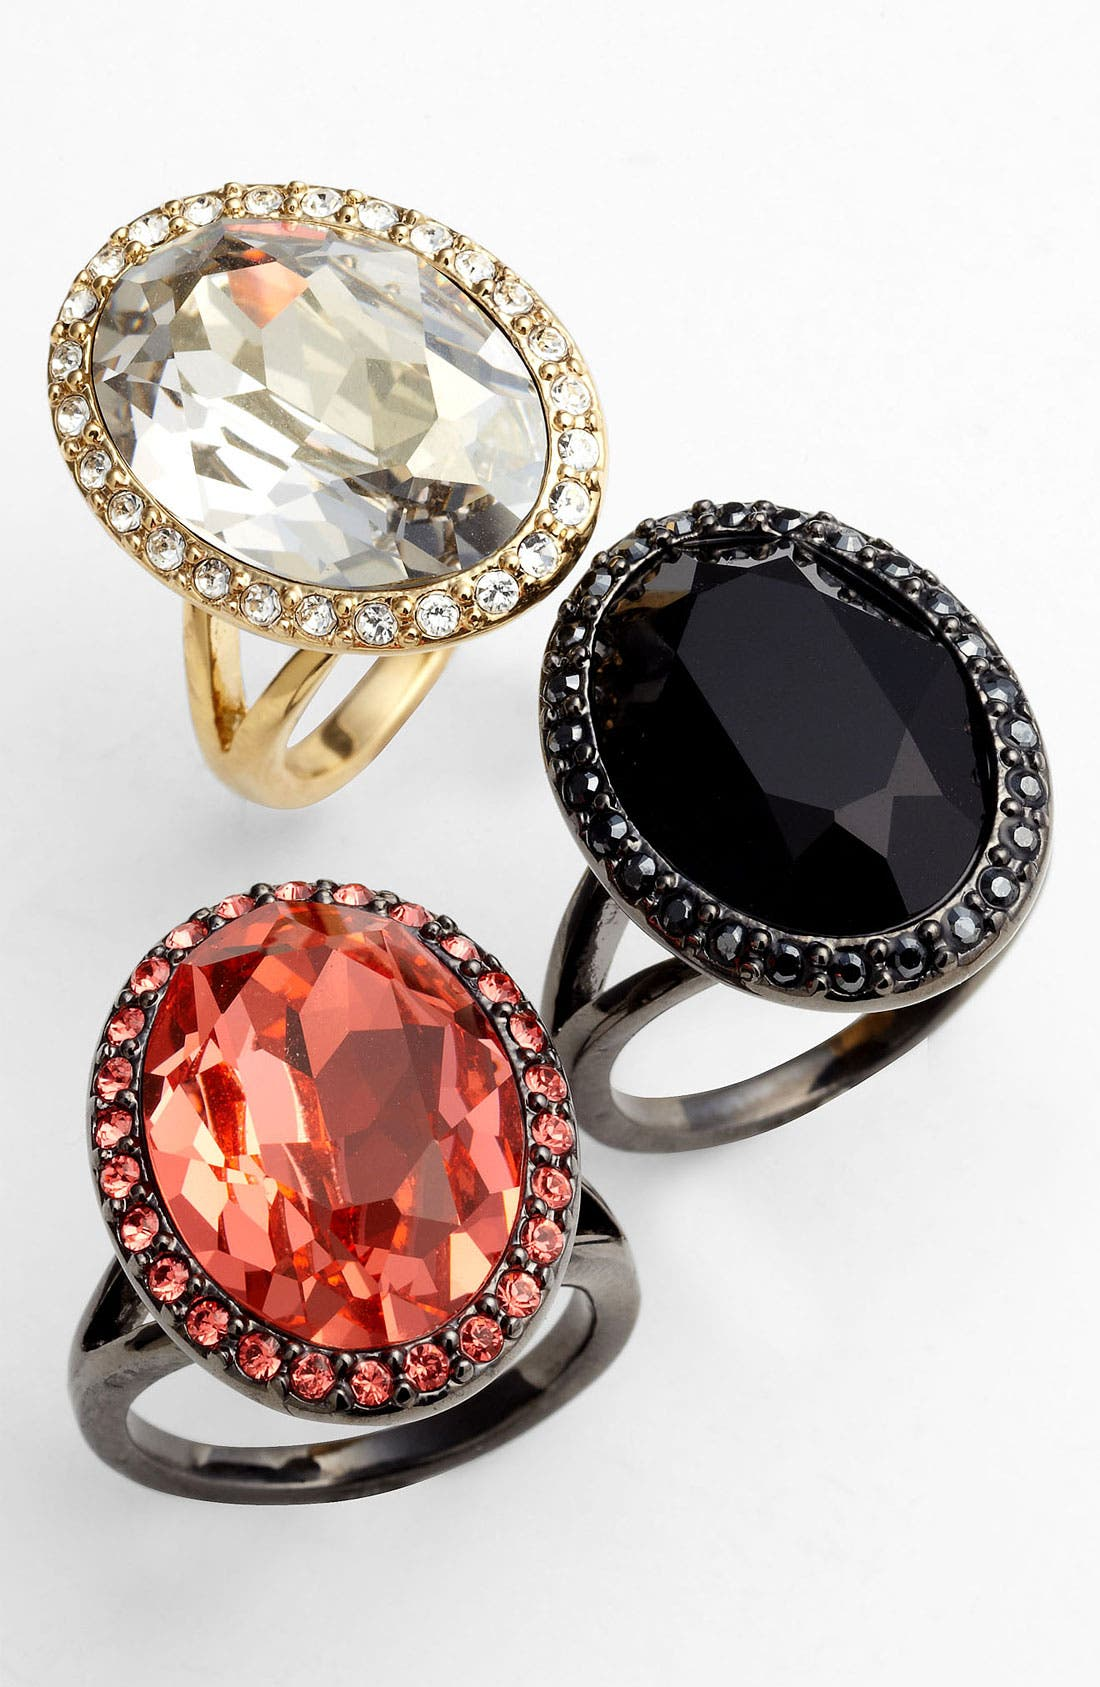 Main Image - Givenchy 'Rock Crystal' Cocktail Ring